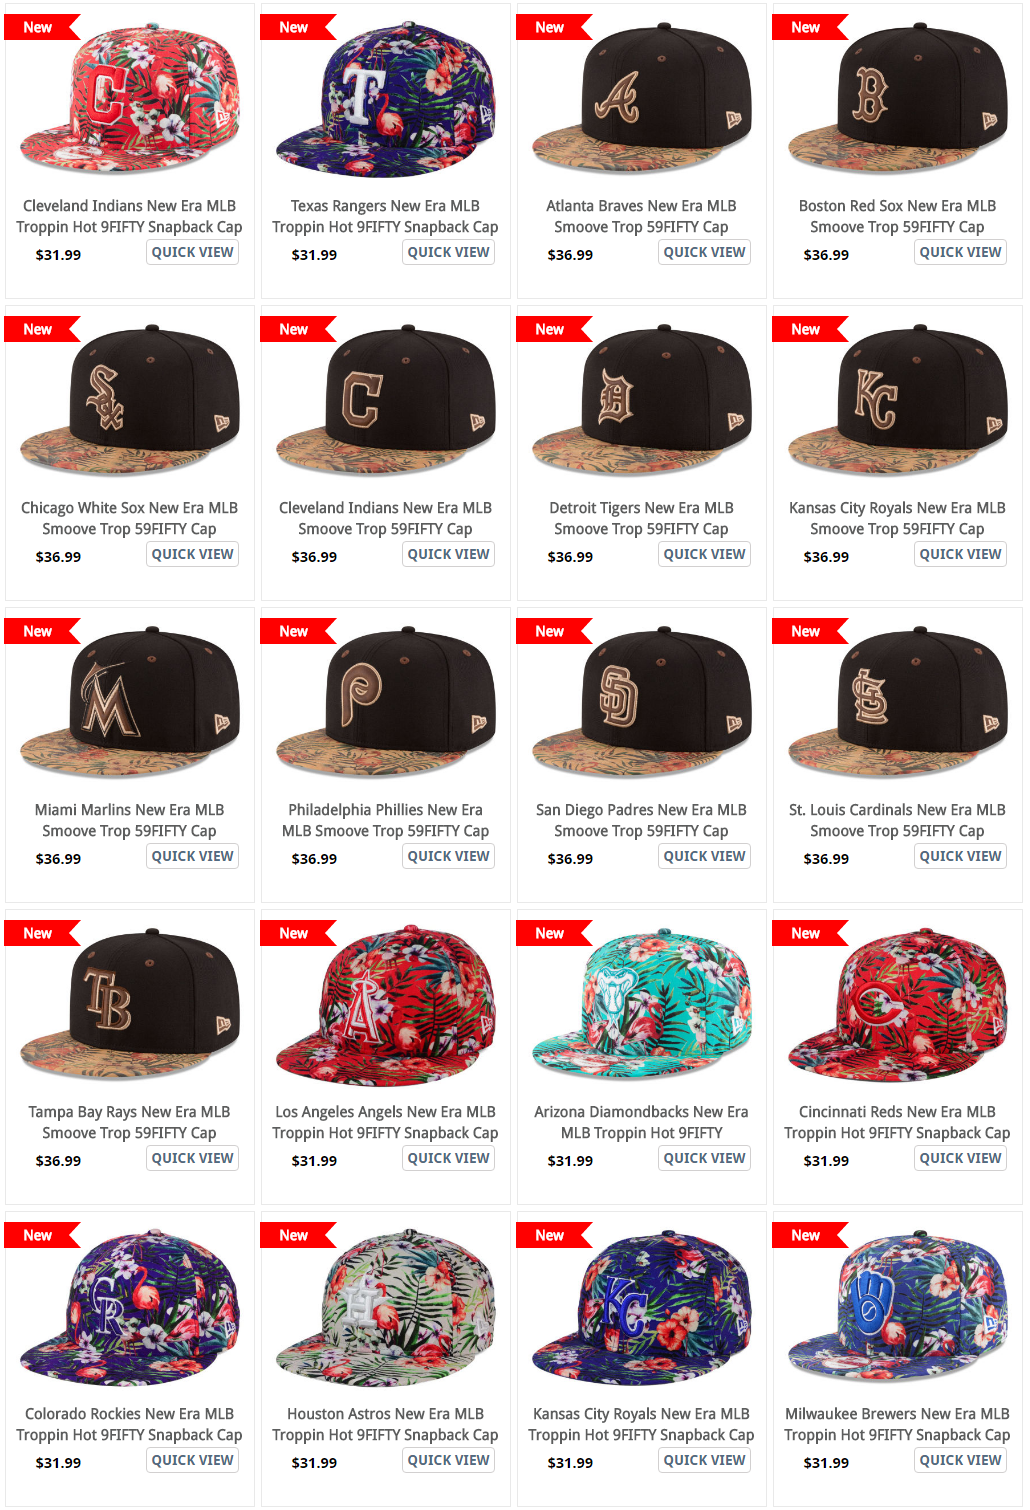 b9a496bd8eb ... NEw ERa MLB Tropical Print Smoove Tropic Hats